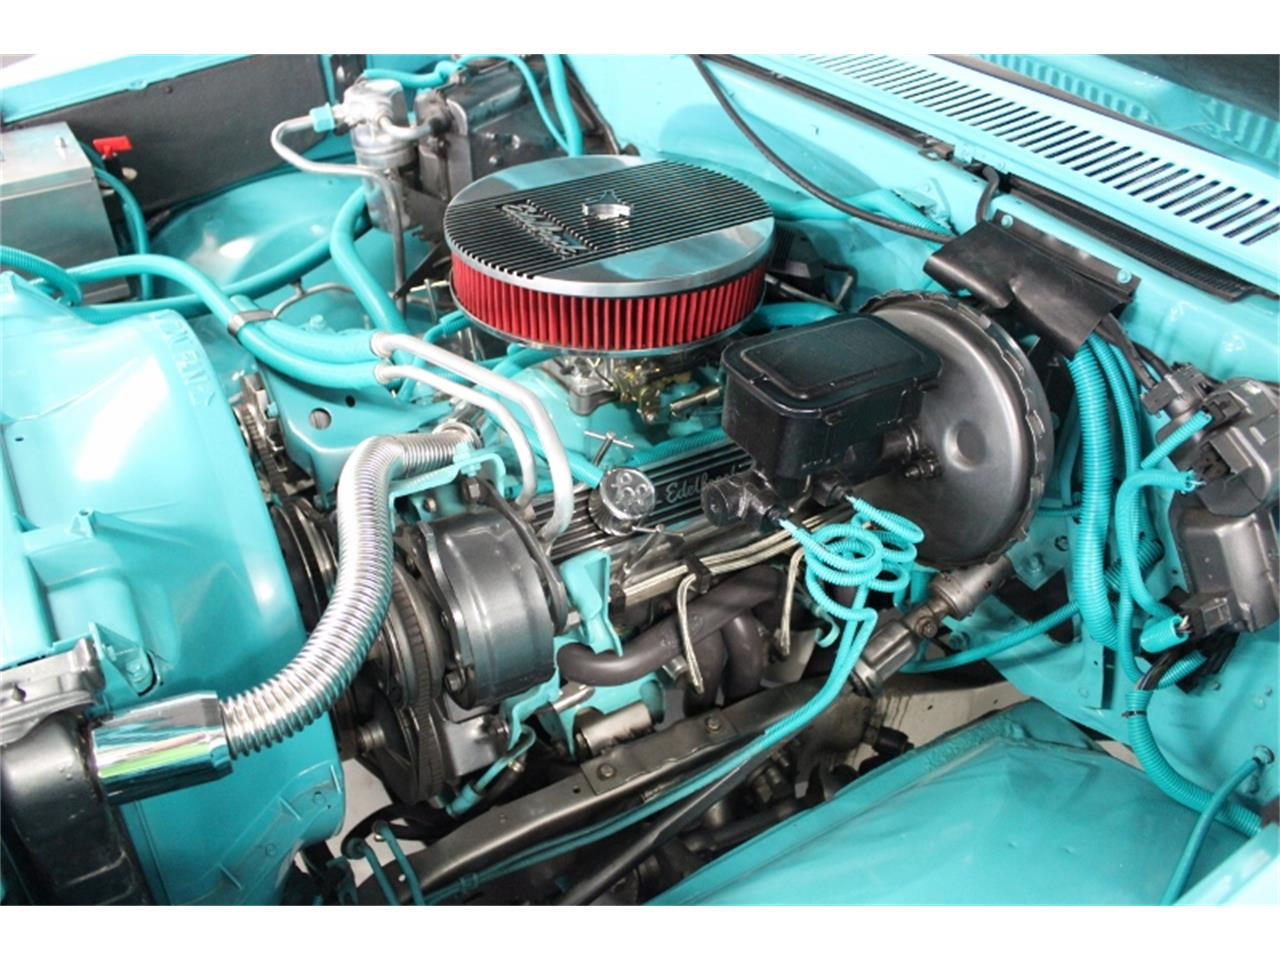 Large Picture of '81 Chevrolet C10 located in North Carolina - $27,000.00 - MDDW